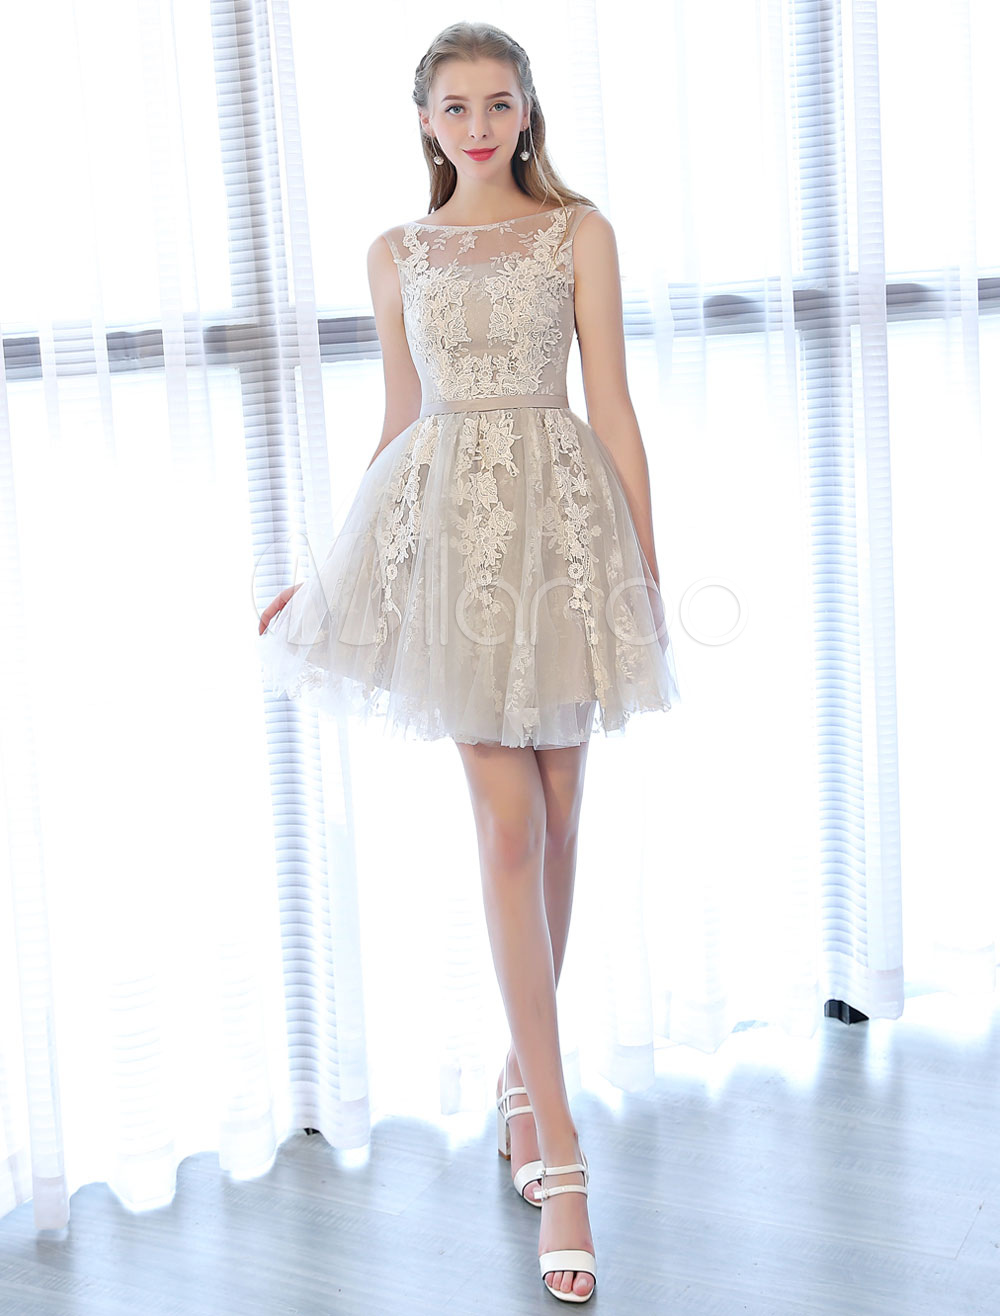 Short Prom Dresses Lace Applique Backless Sleeveless Sash Mini Graduation Dress